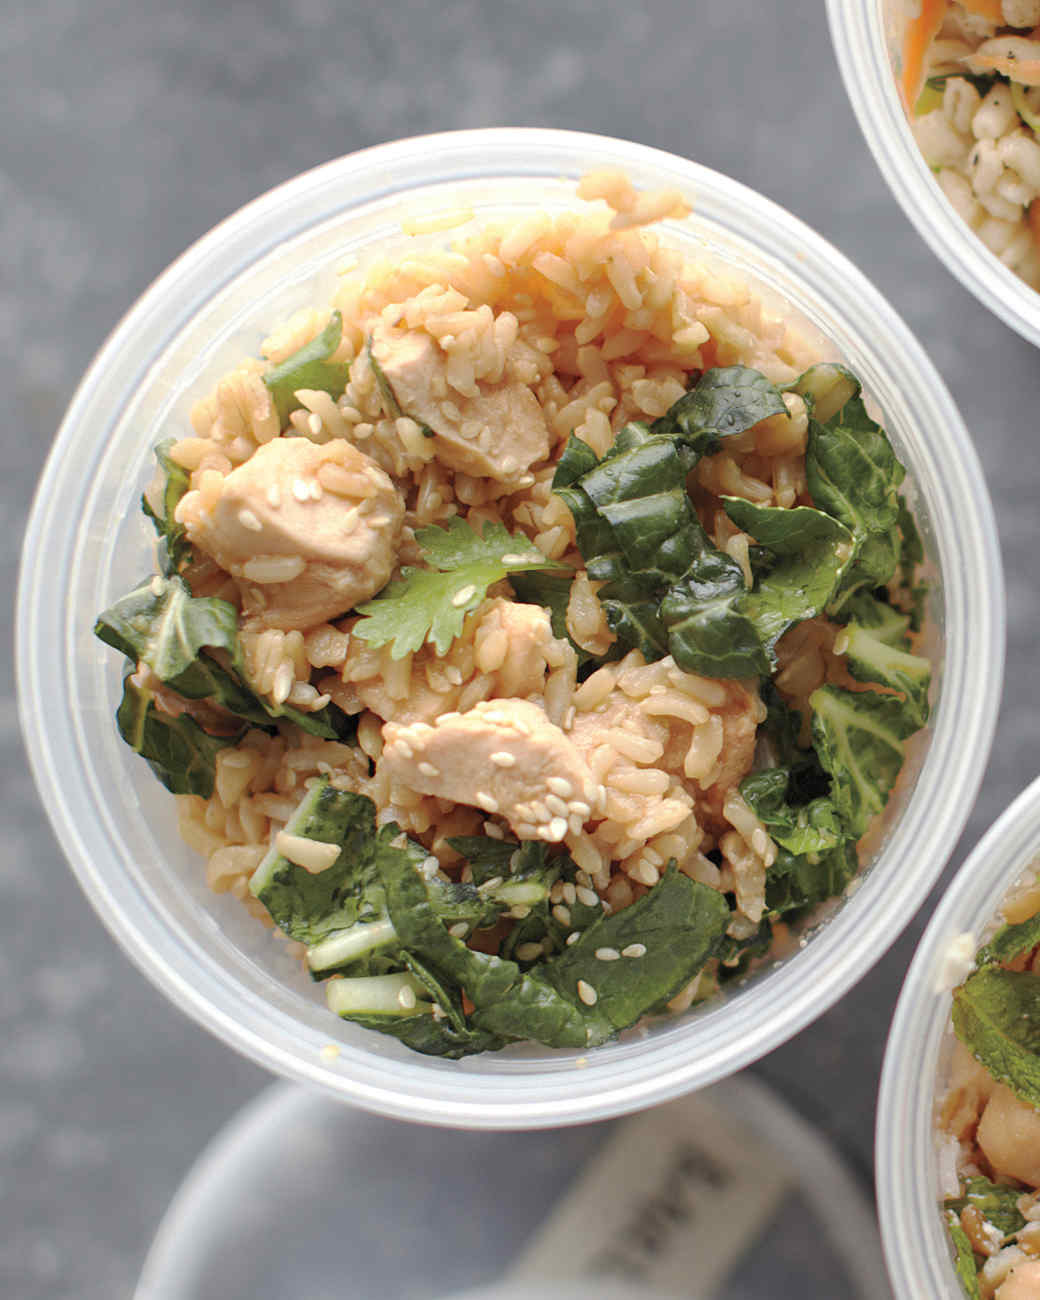 brown-rice-chicken-cilantro-salad-0911mld107548.jpg